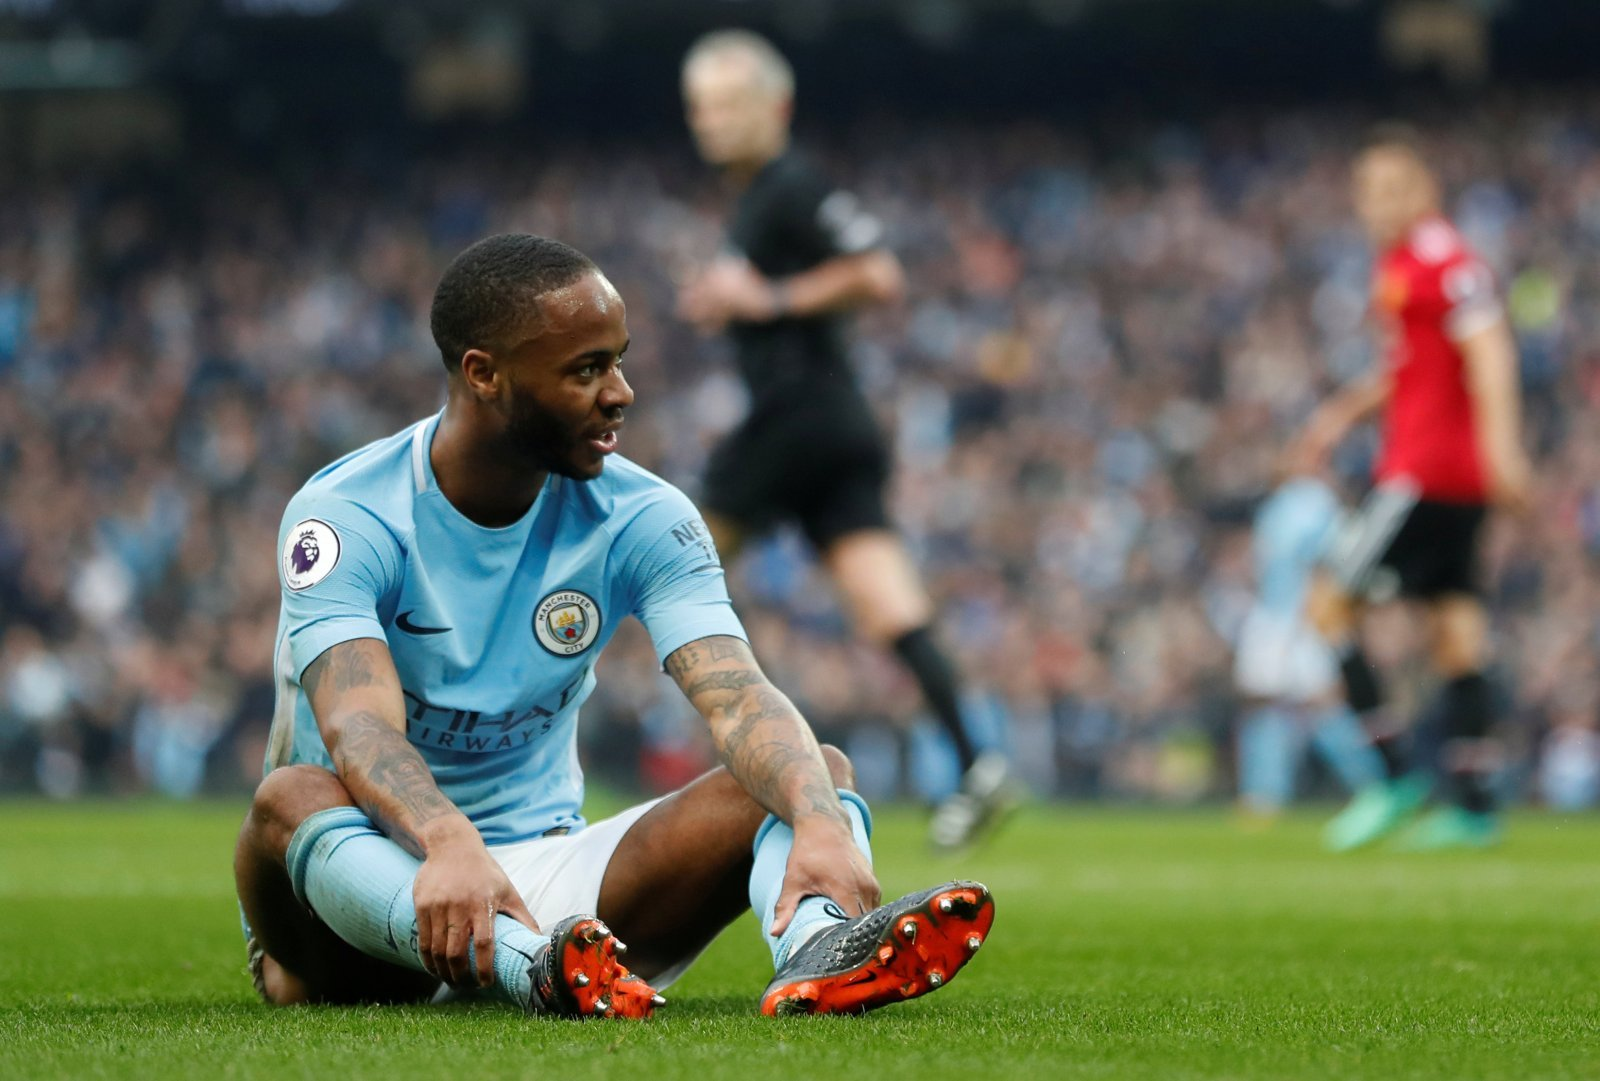 Recent reports could prompt Liverpool into move to re-sign Raheem Sterling